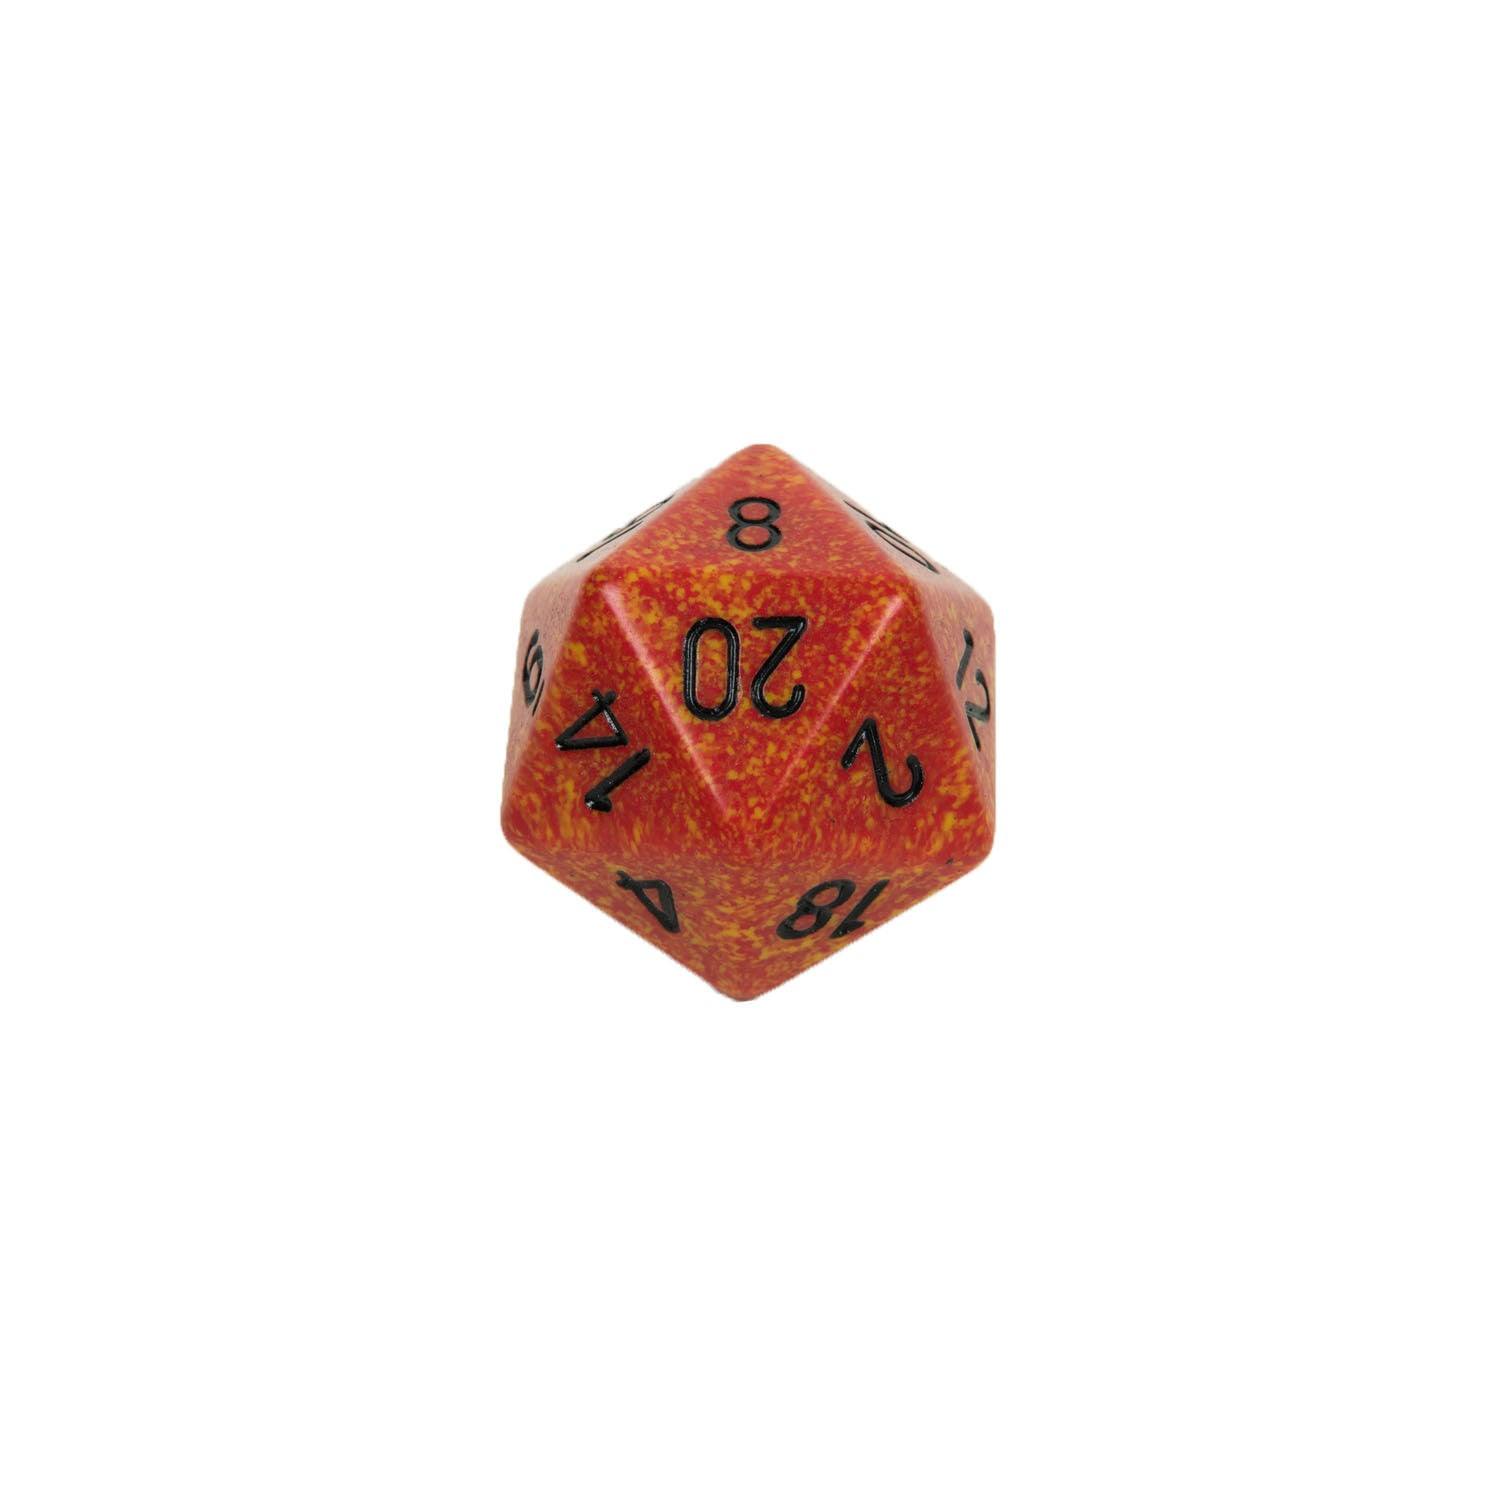 Chessex CHXXS2021 Fire™ Speckled 34mm d20 single